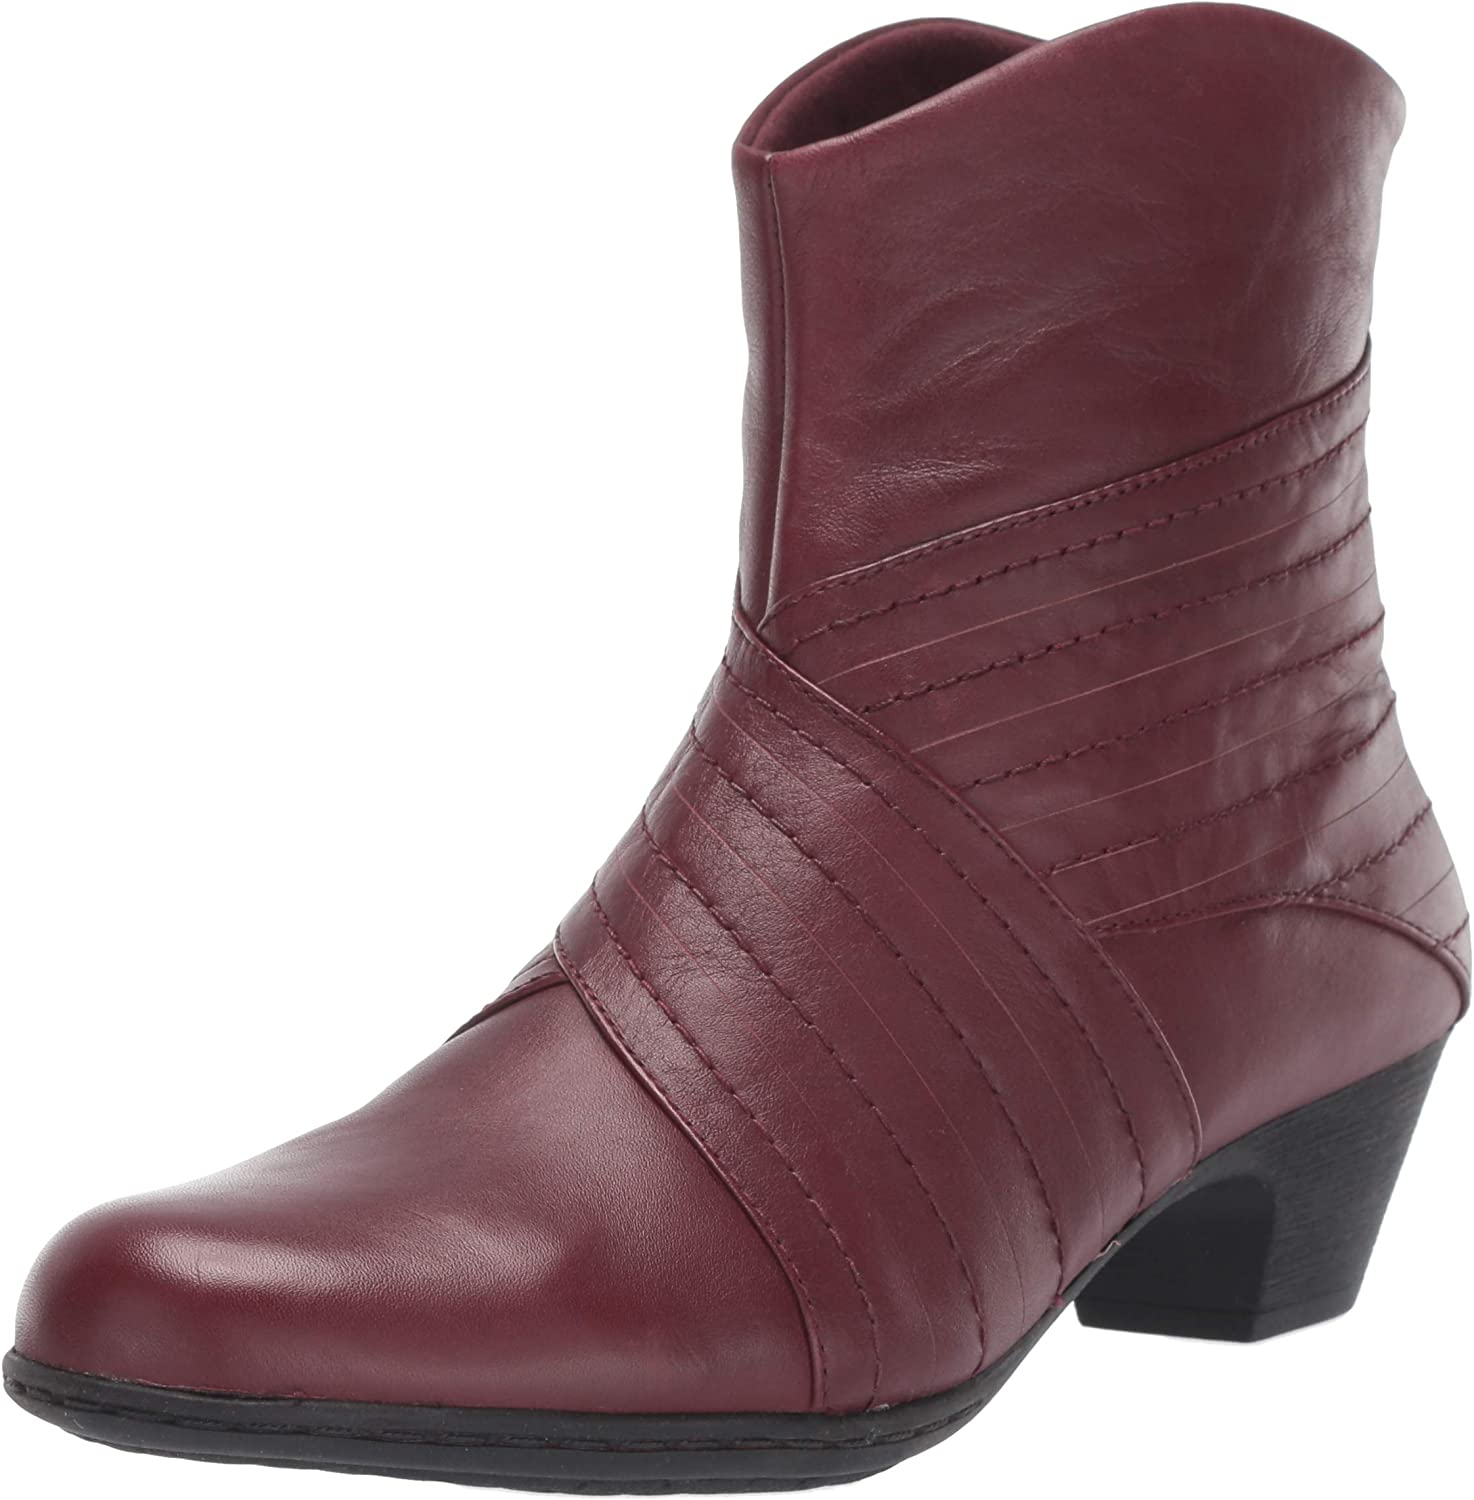 Rockport Women's Faline Rouched Bootie Ankle Boot,